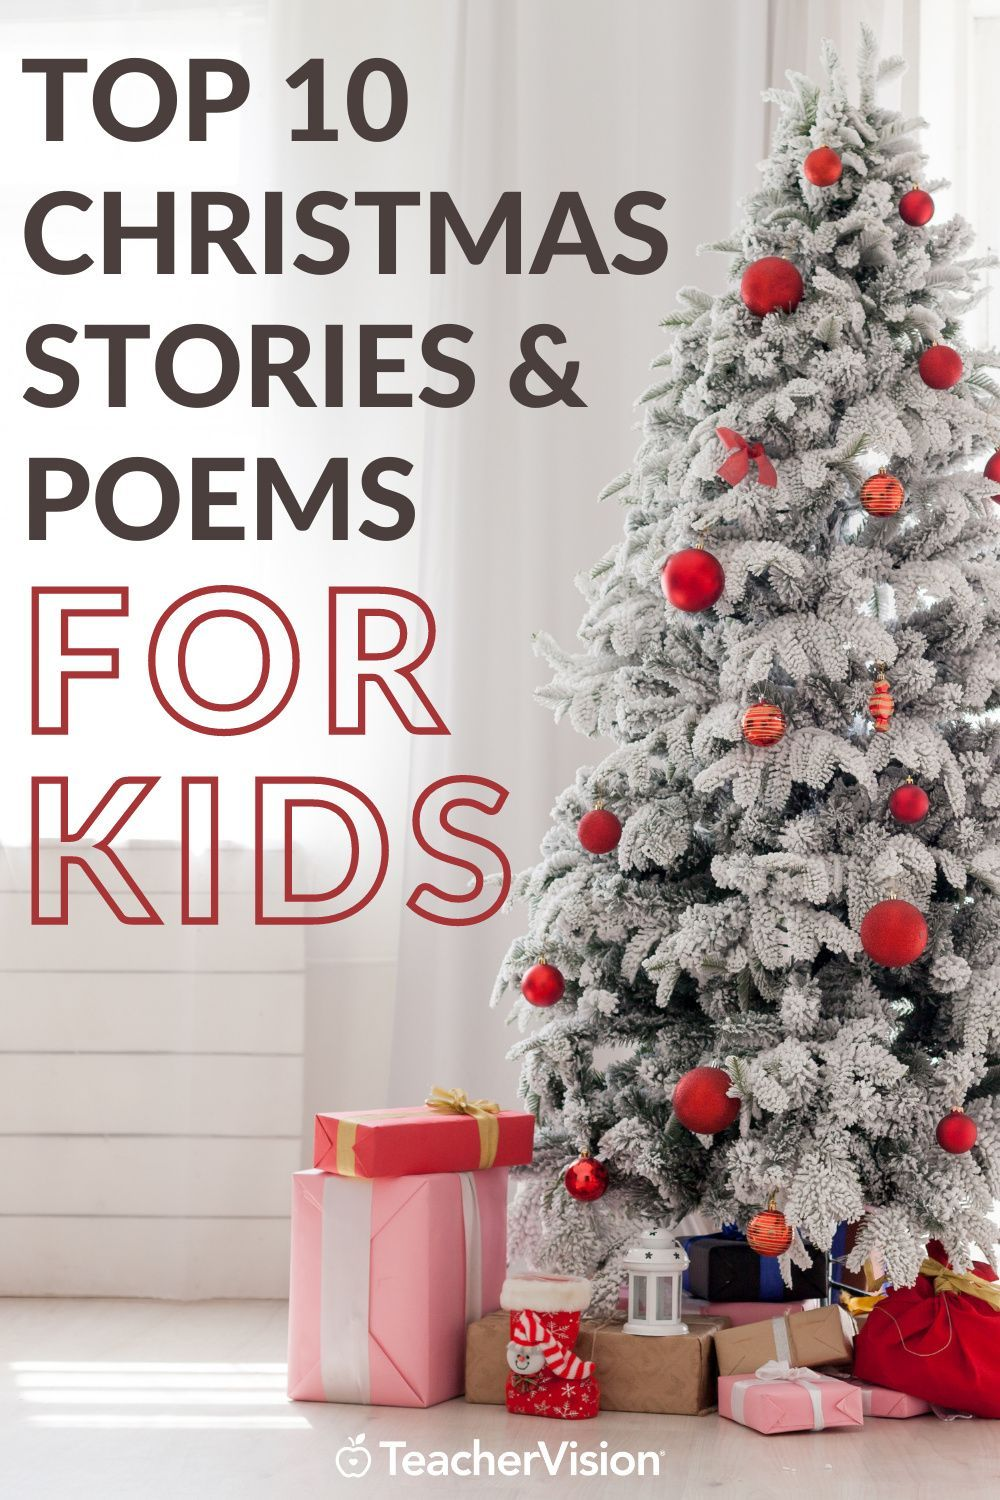 Top 10 Christmas Stories & Poems for Kids in 2020 | A christmas